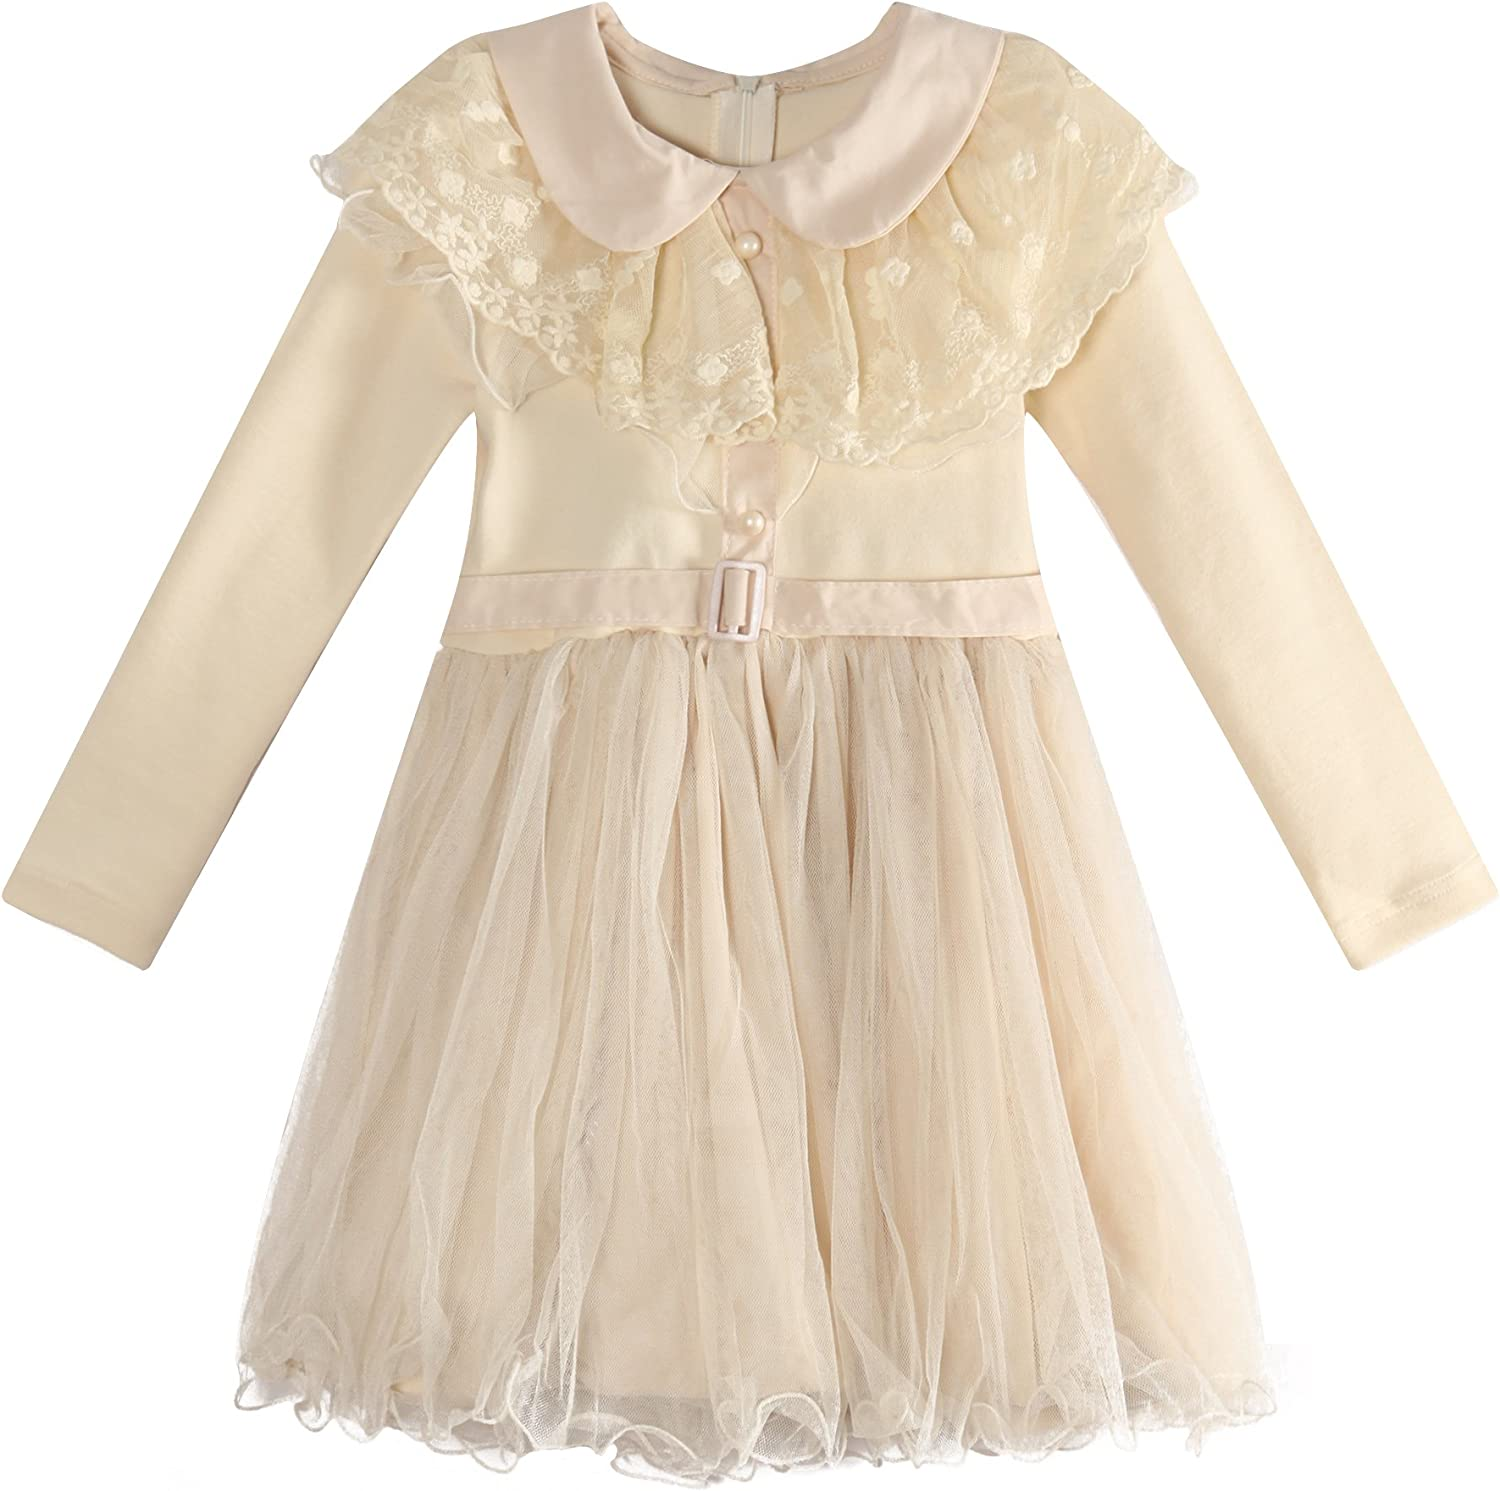 Richie House Big Girls' Dress with Tulle Skirt and Lace Collar RH0915